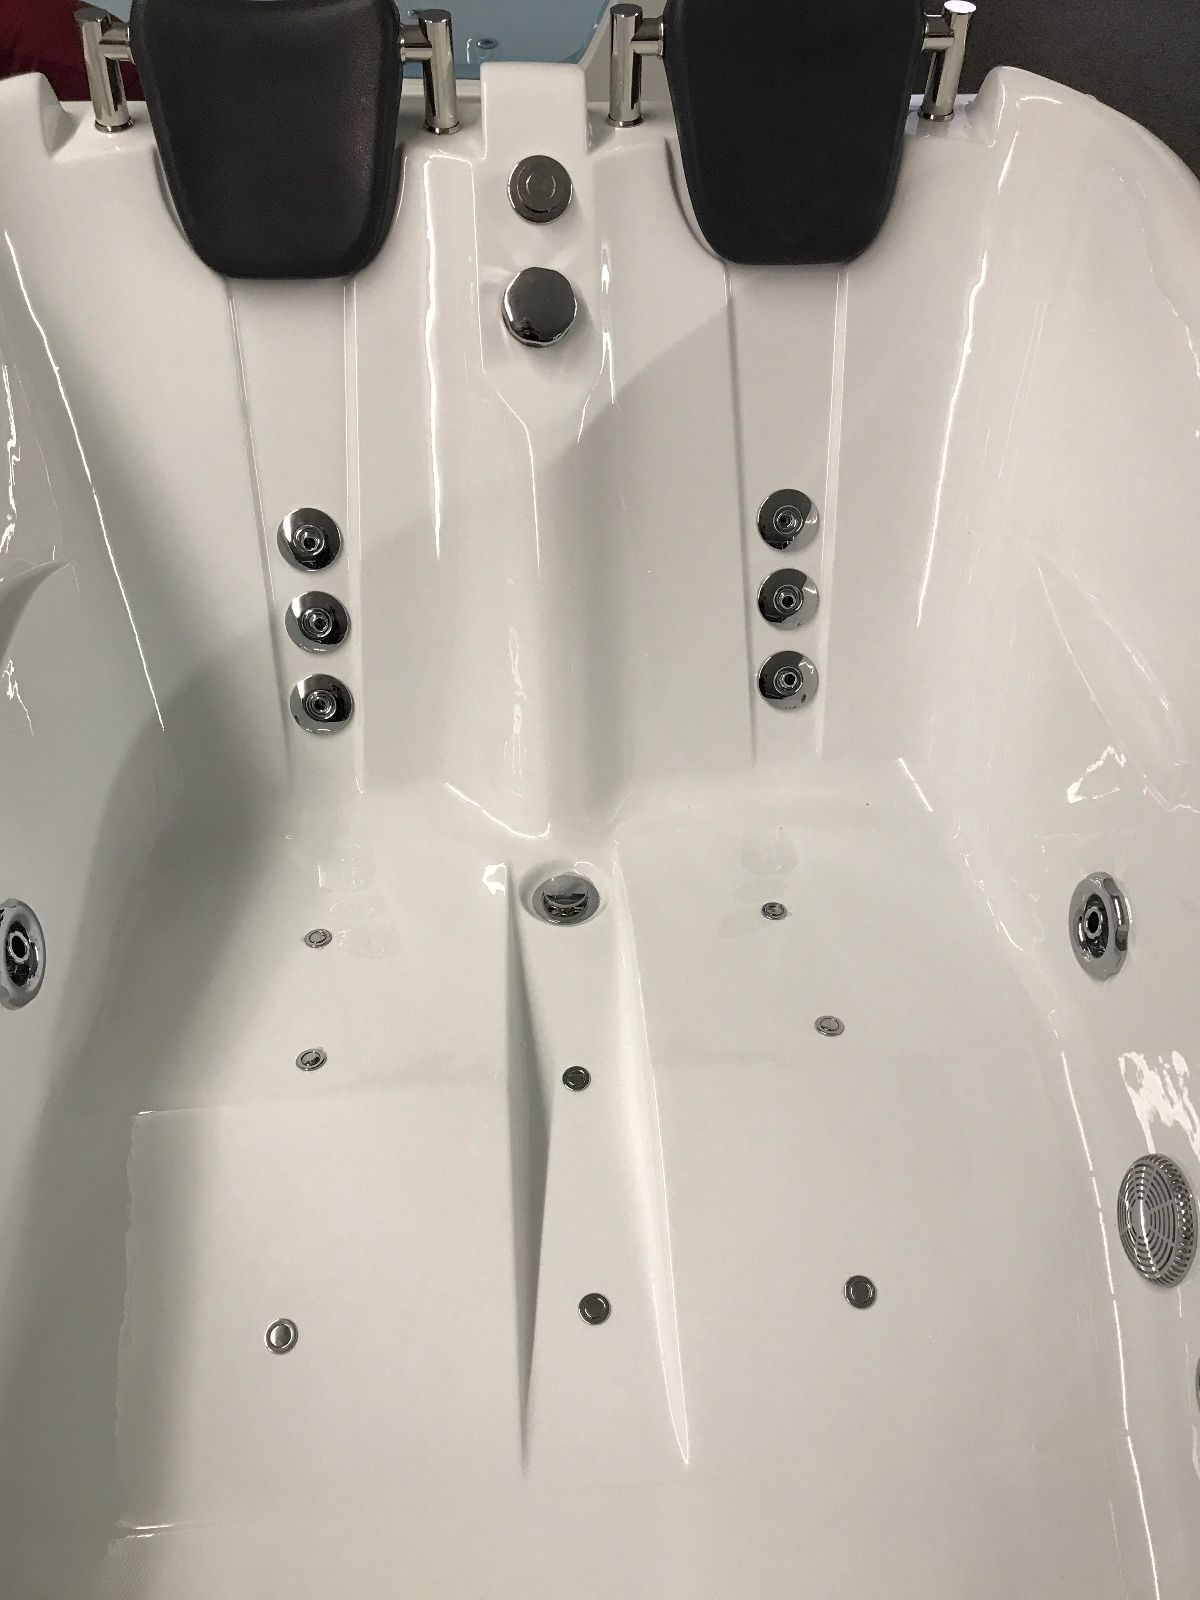 2 Person Jetted Bathtub W Air Jets Heater C022l Best For